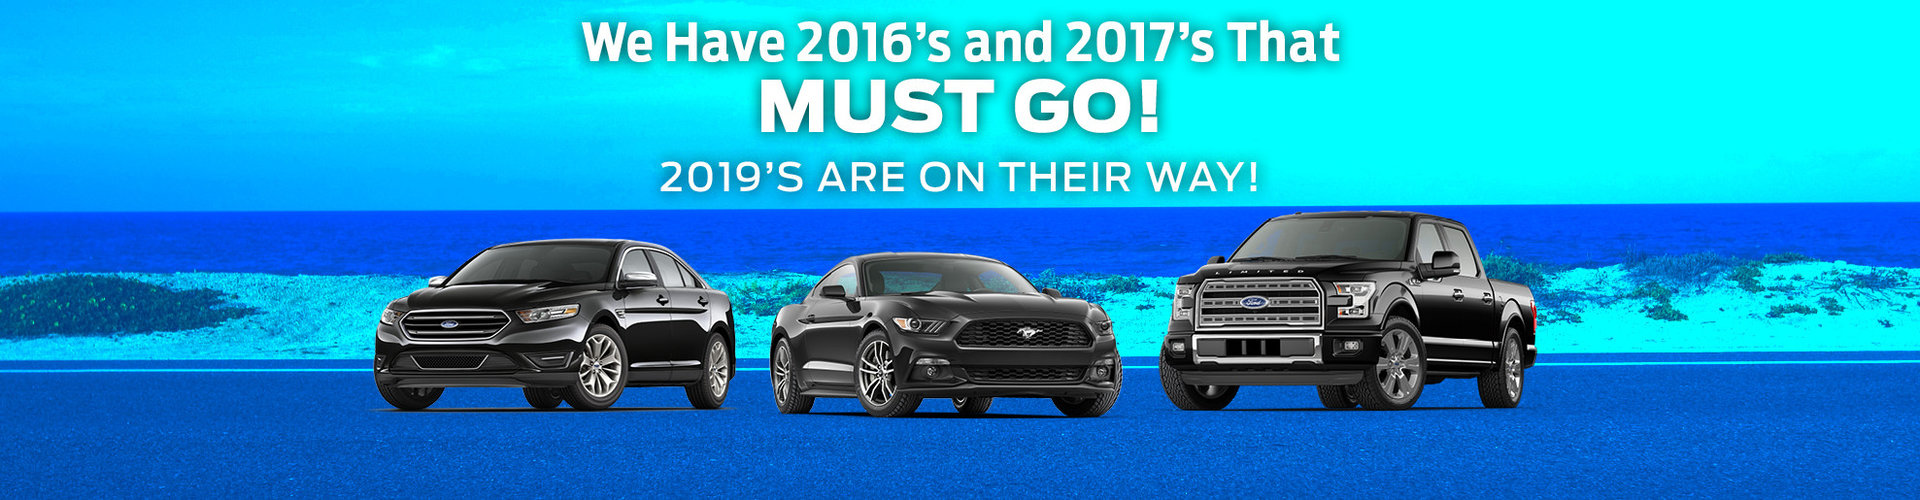 2016 and 2017s that Must Go!  2019s are on their way!